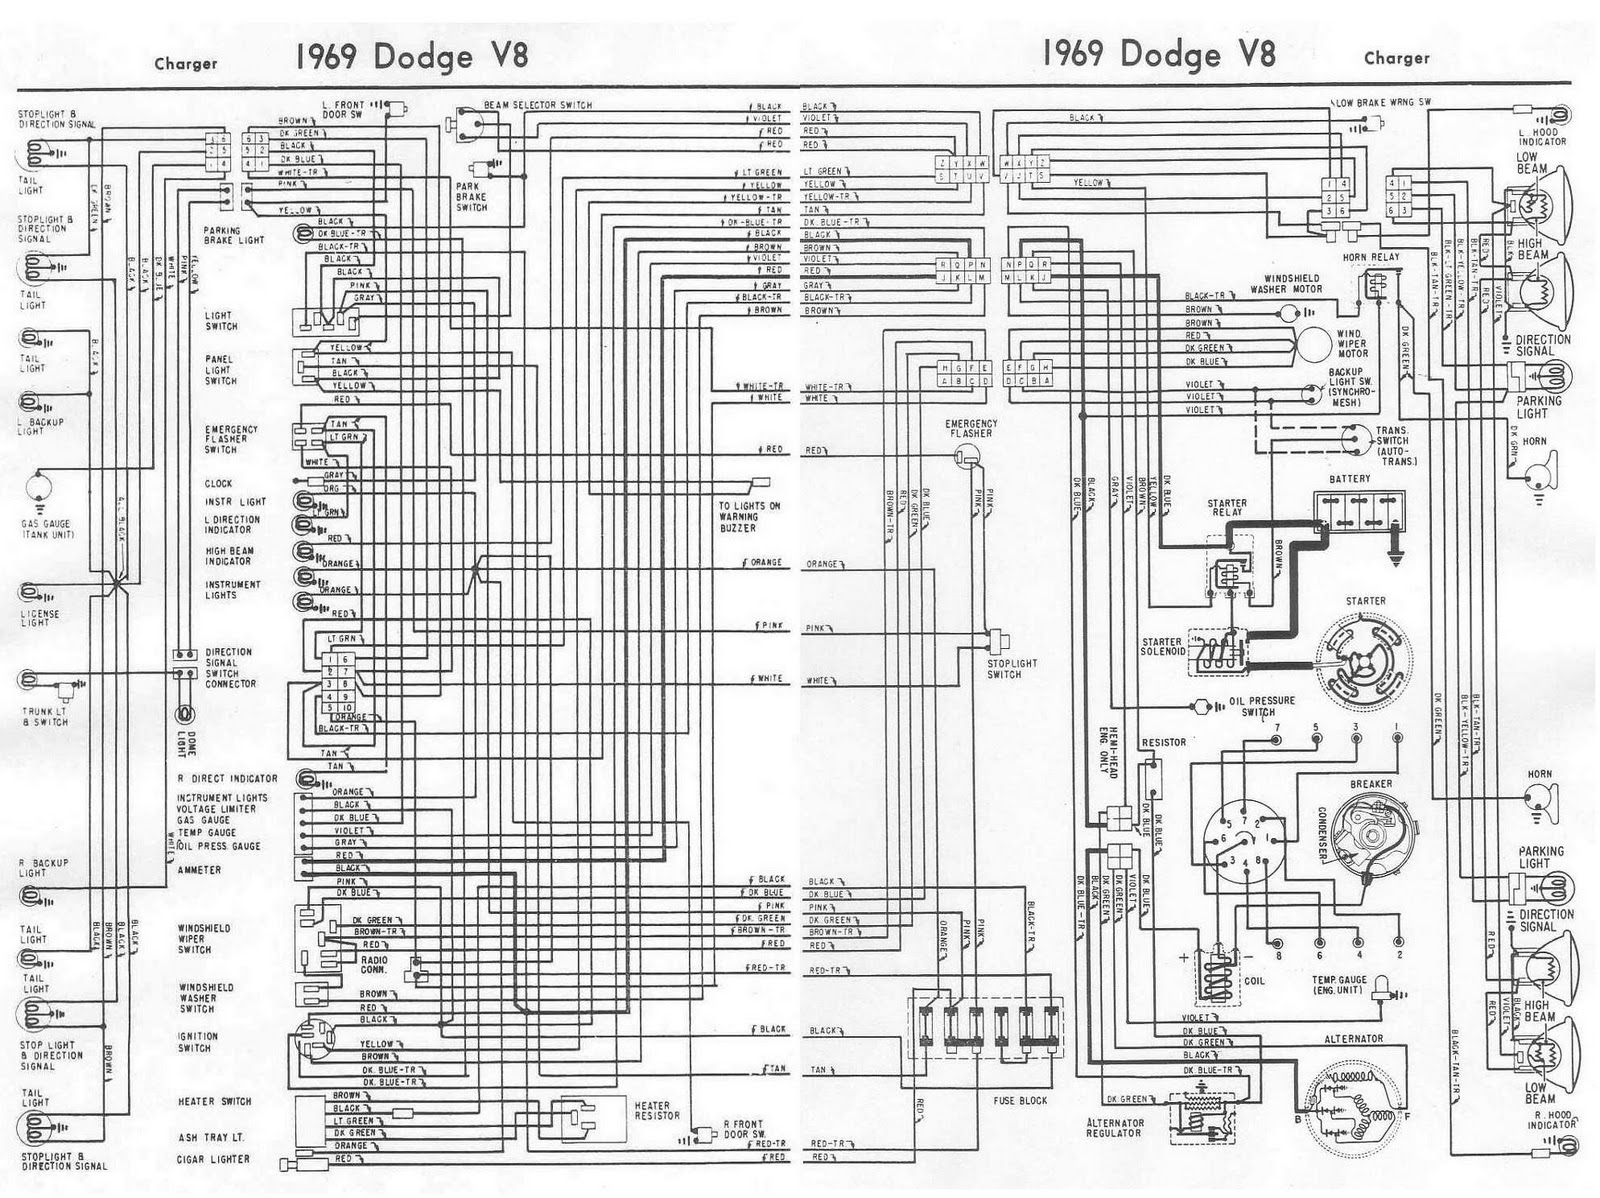 Dodge Charger 1969 V8 Complete Electrical Wiring Diagram